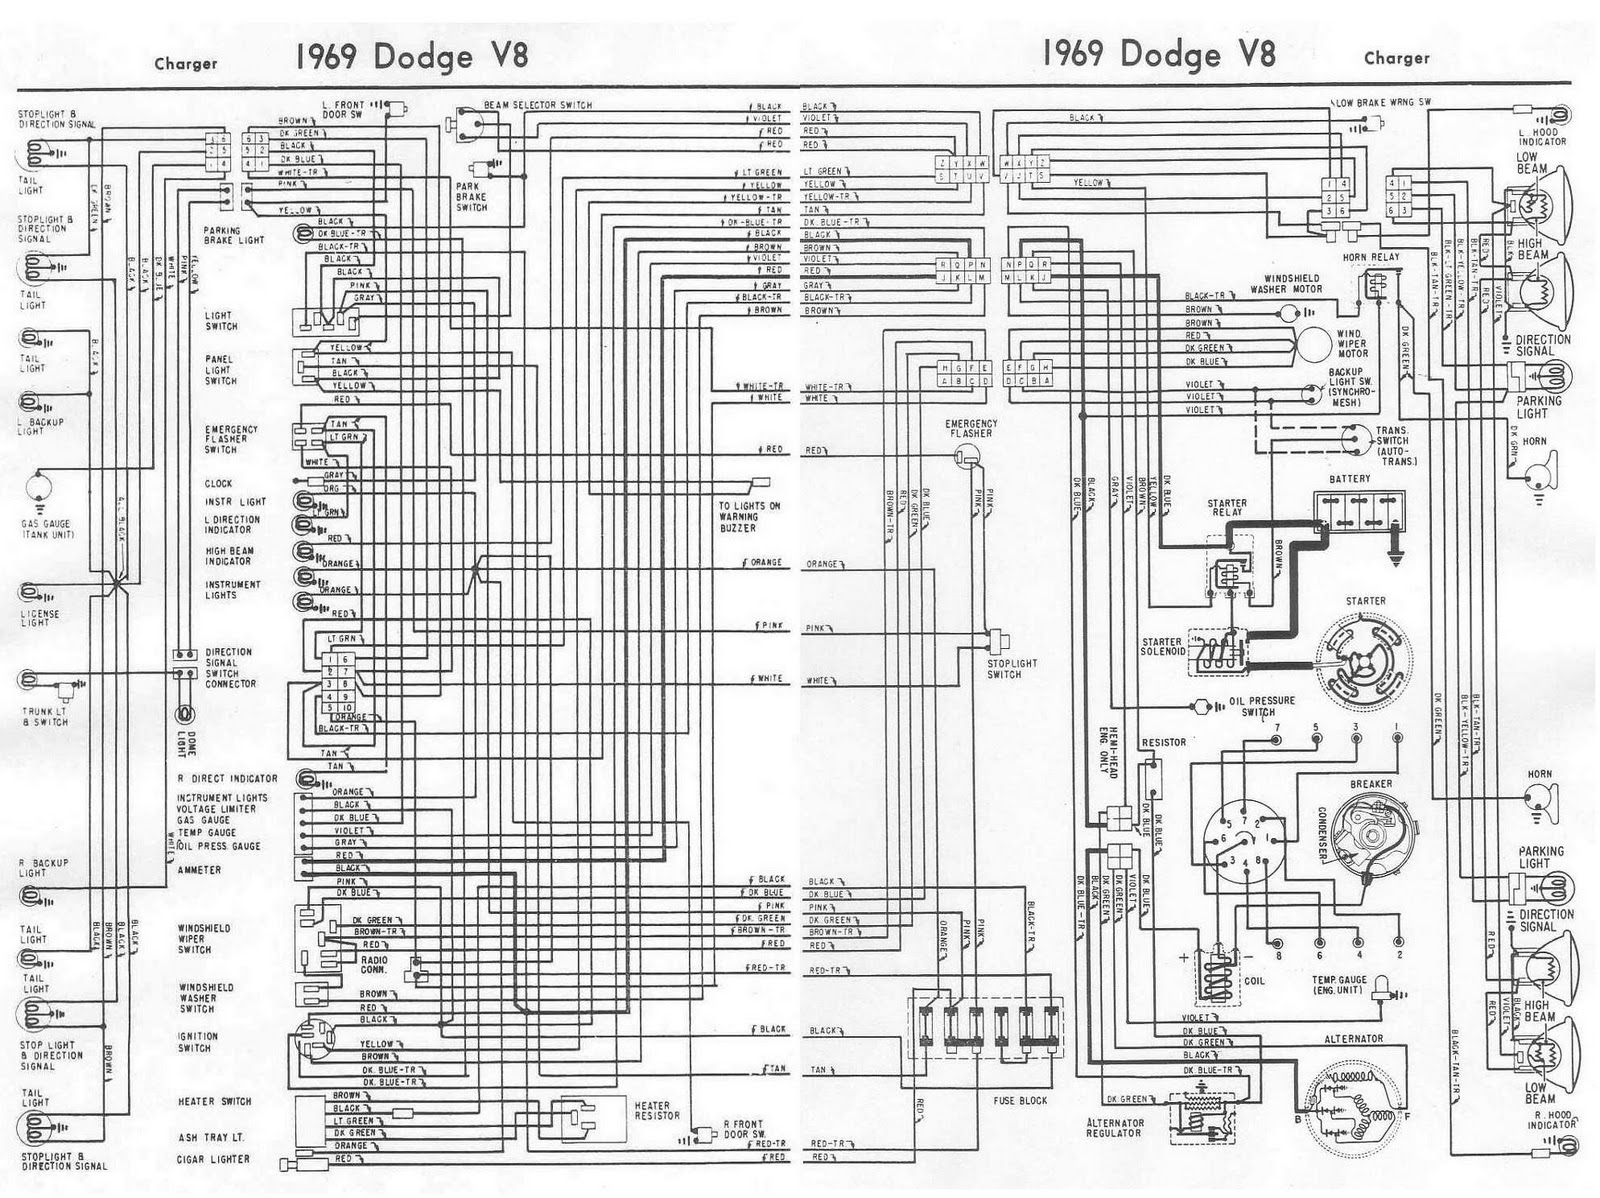 Dodge Charger 1969 V8 Complete Electrical Wiring Diagram